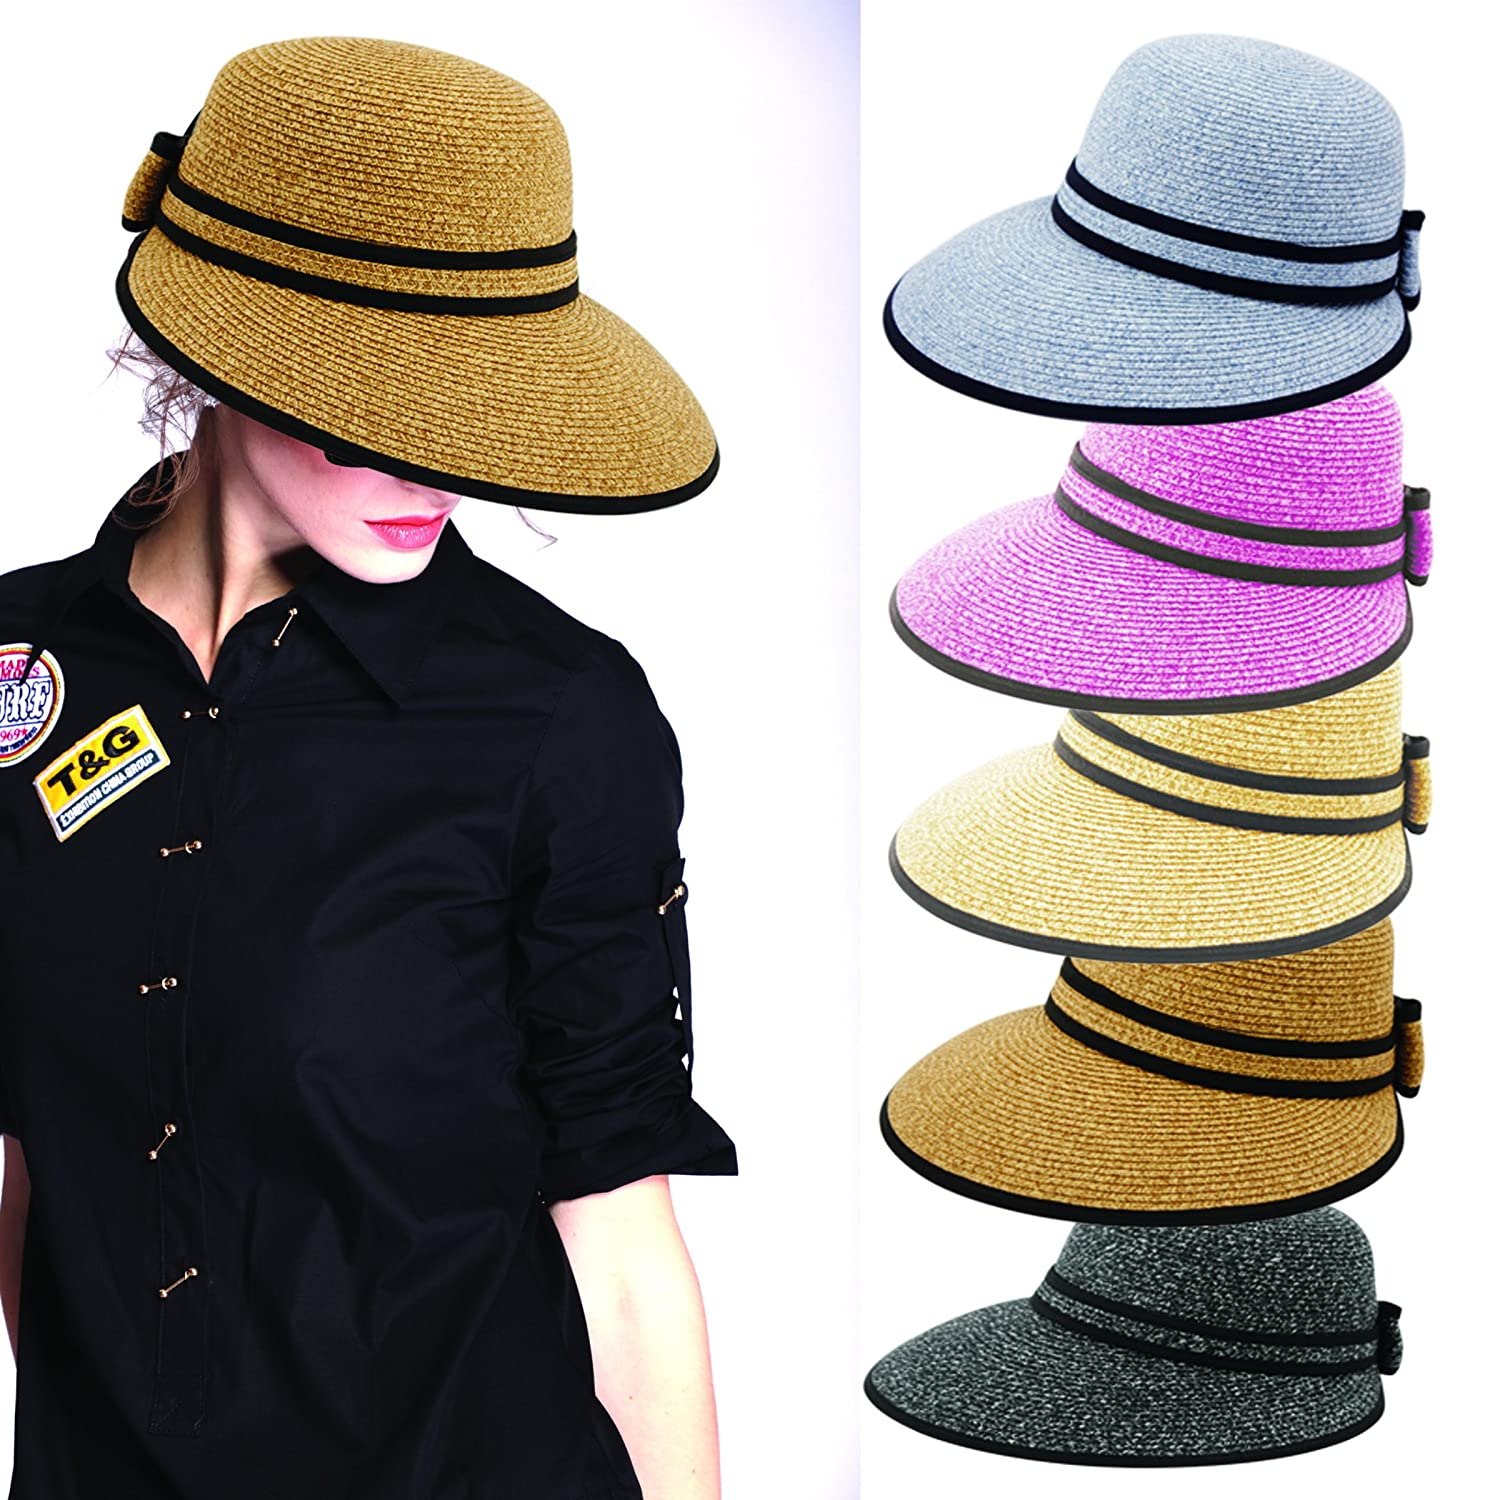 Wide Front Brim and Smaller Back Straw Packable Sun Hat with Black Sash